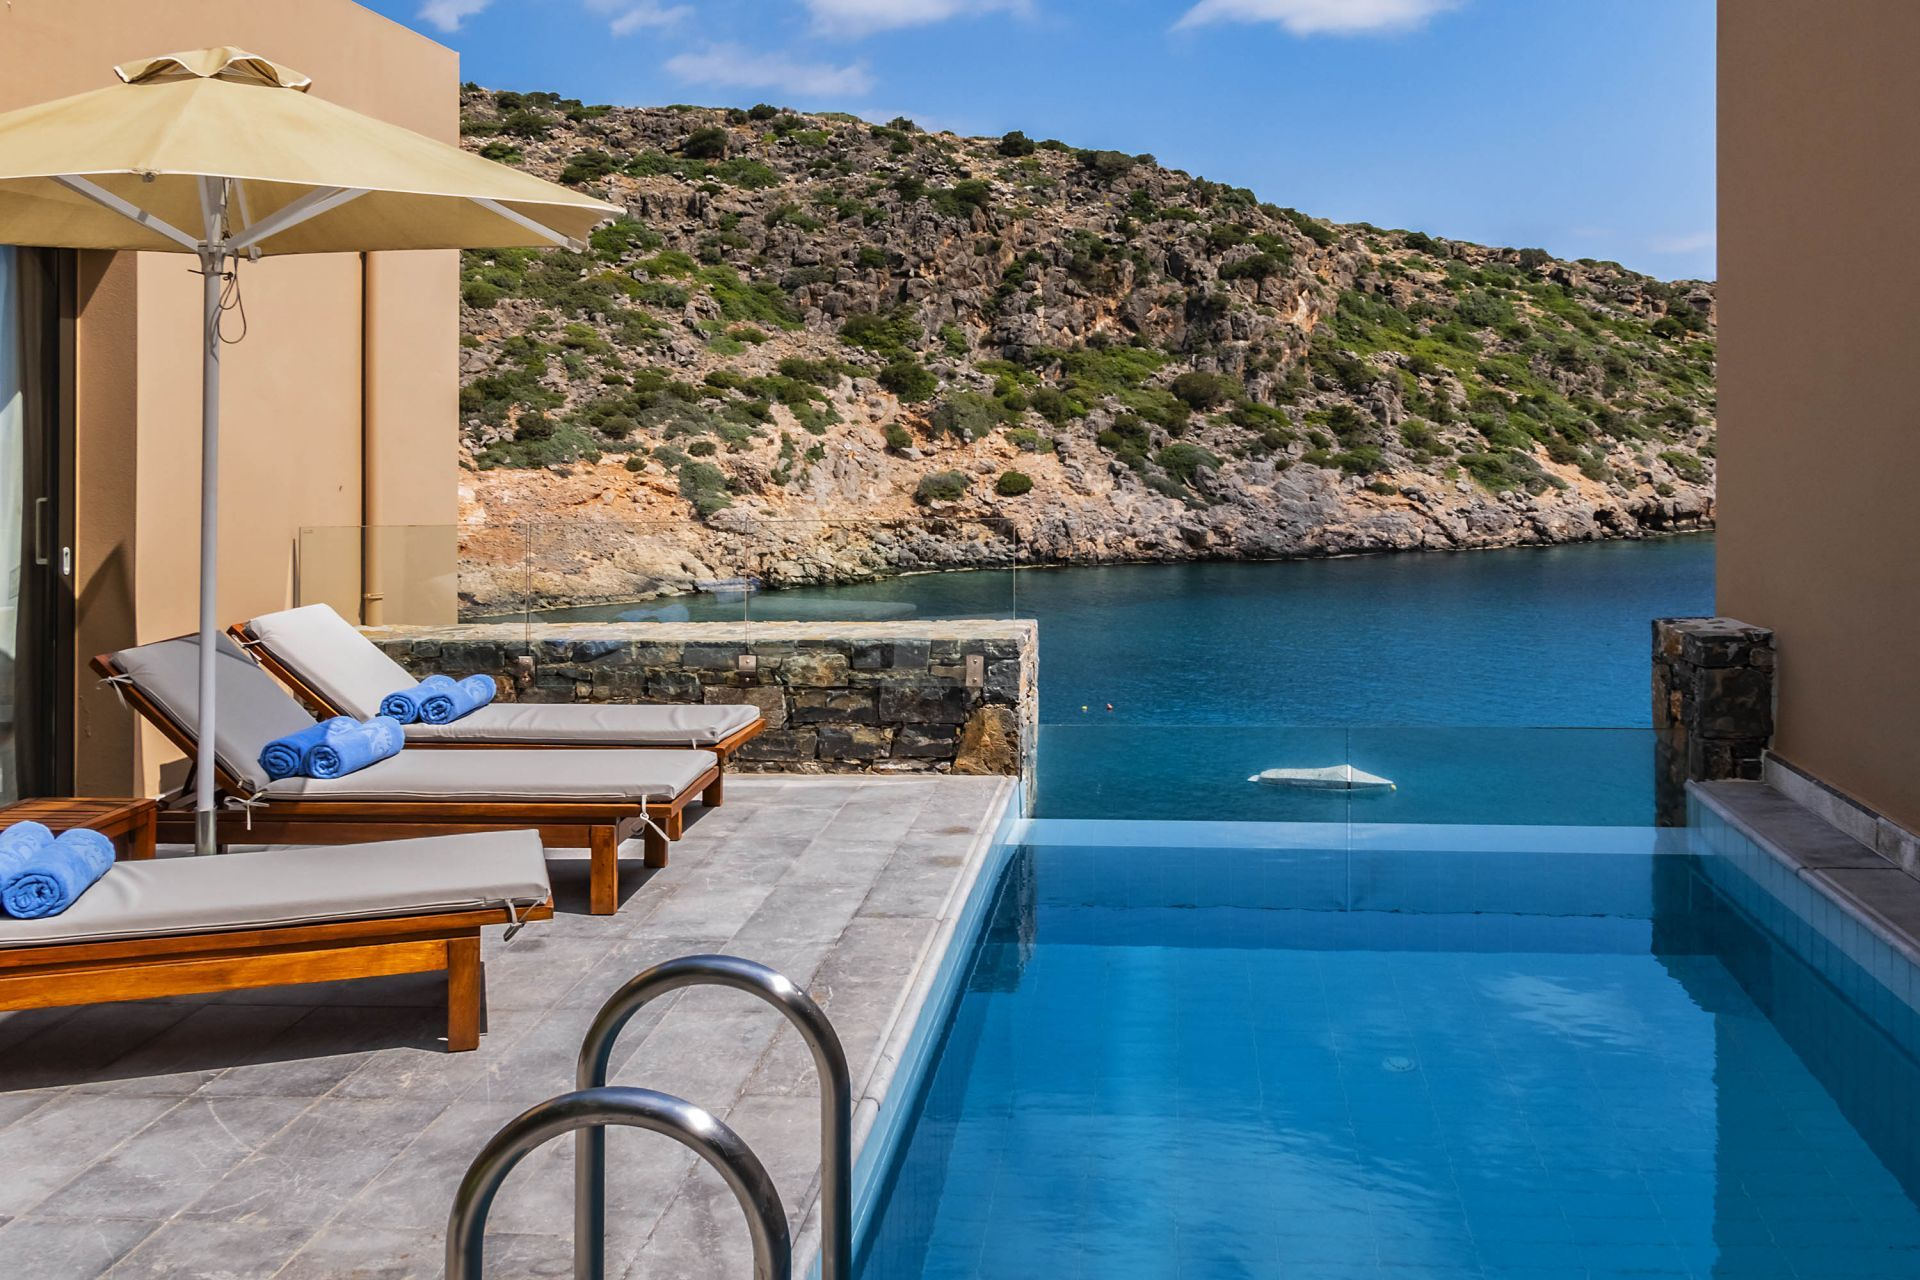 Bungalows in Greece